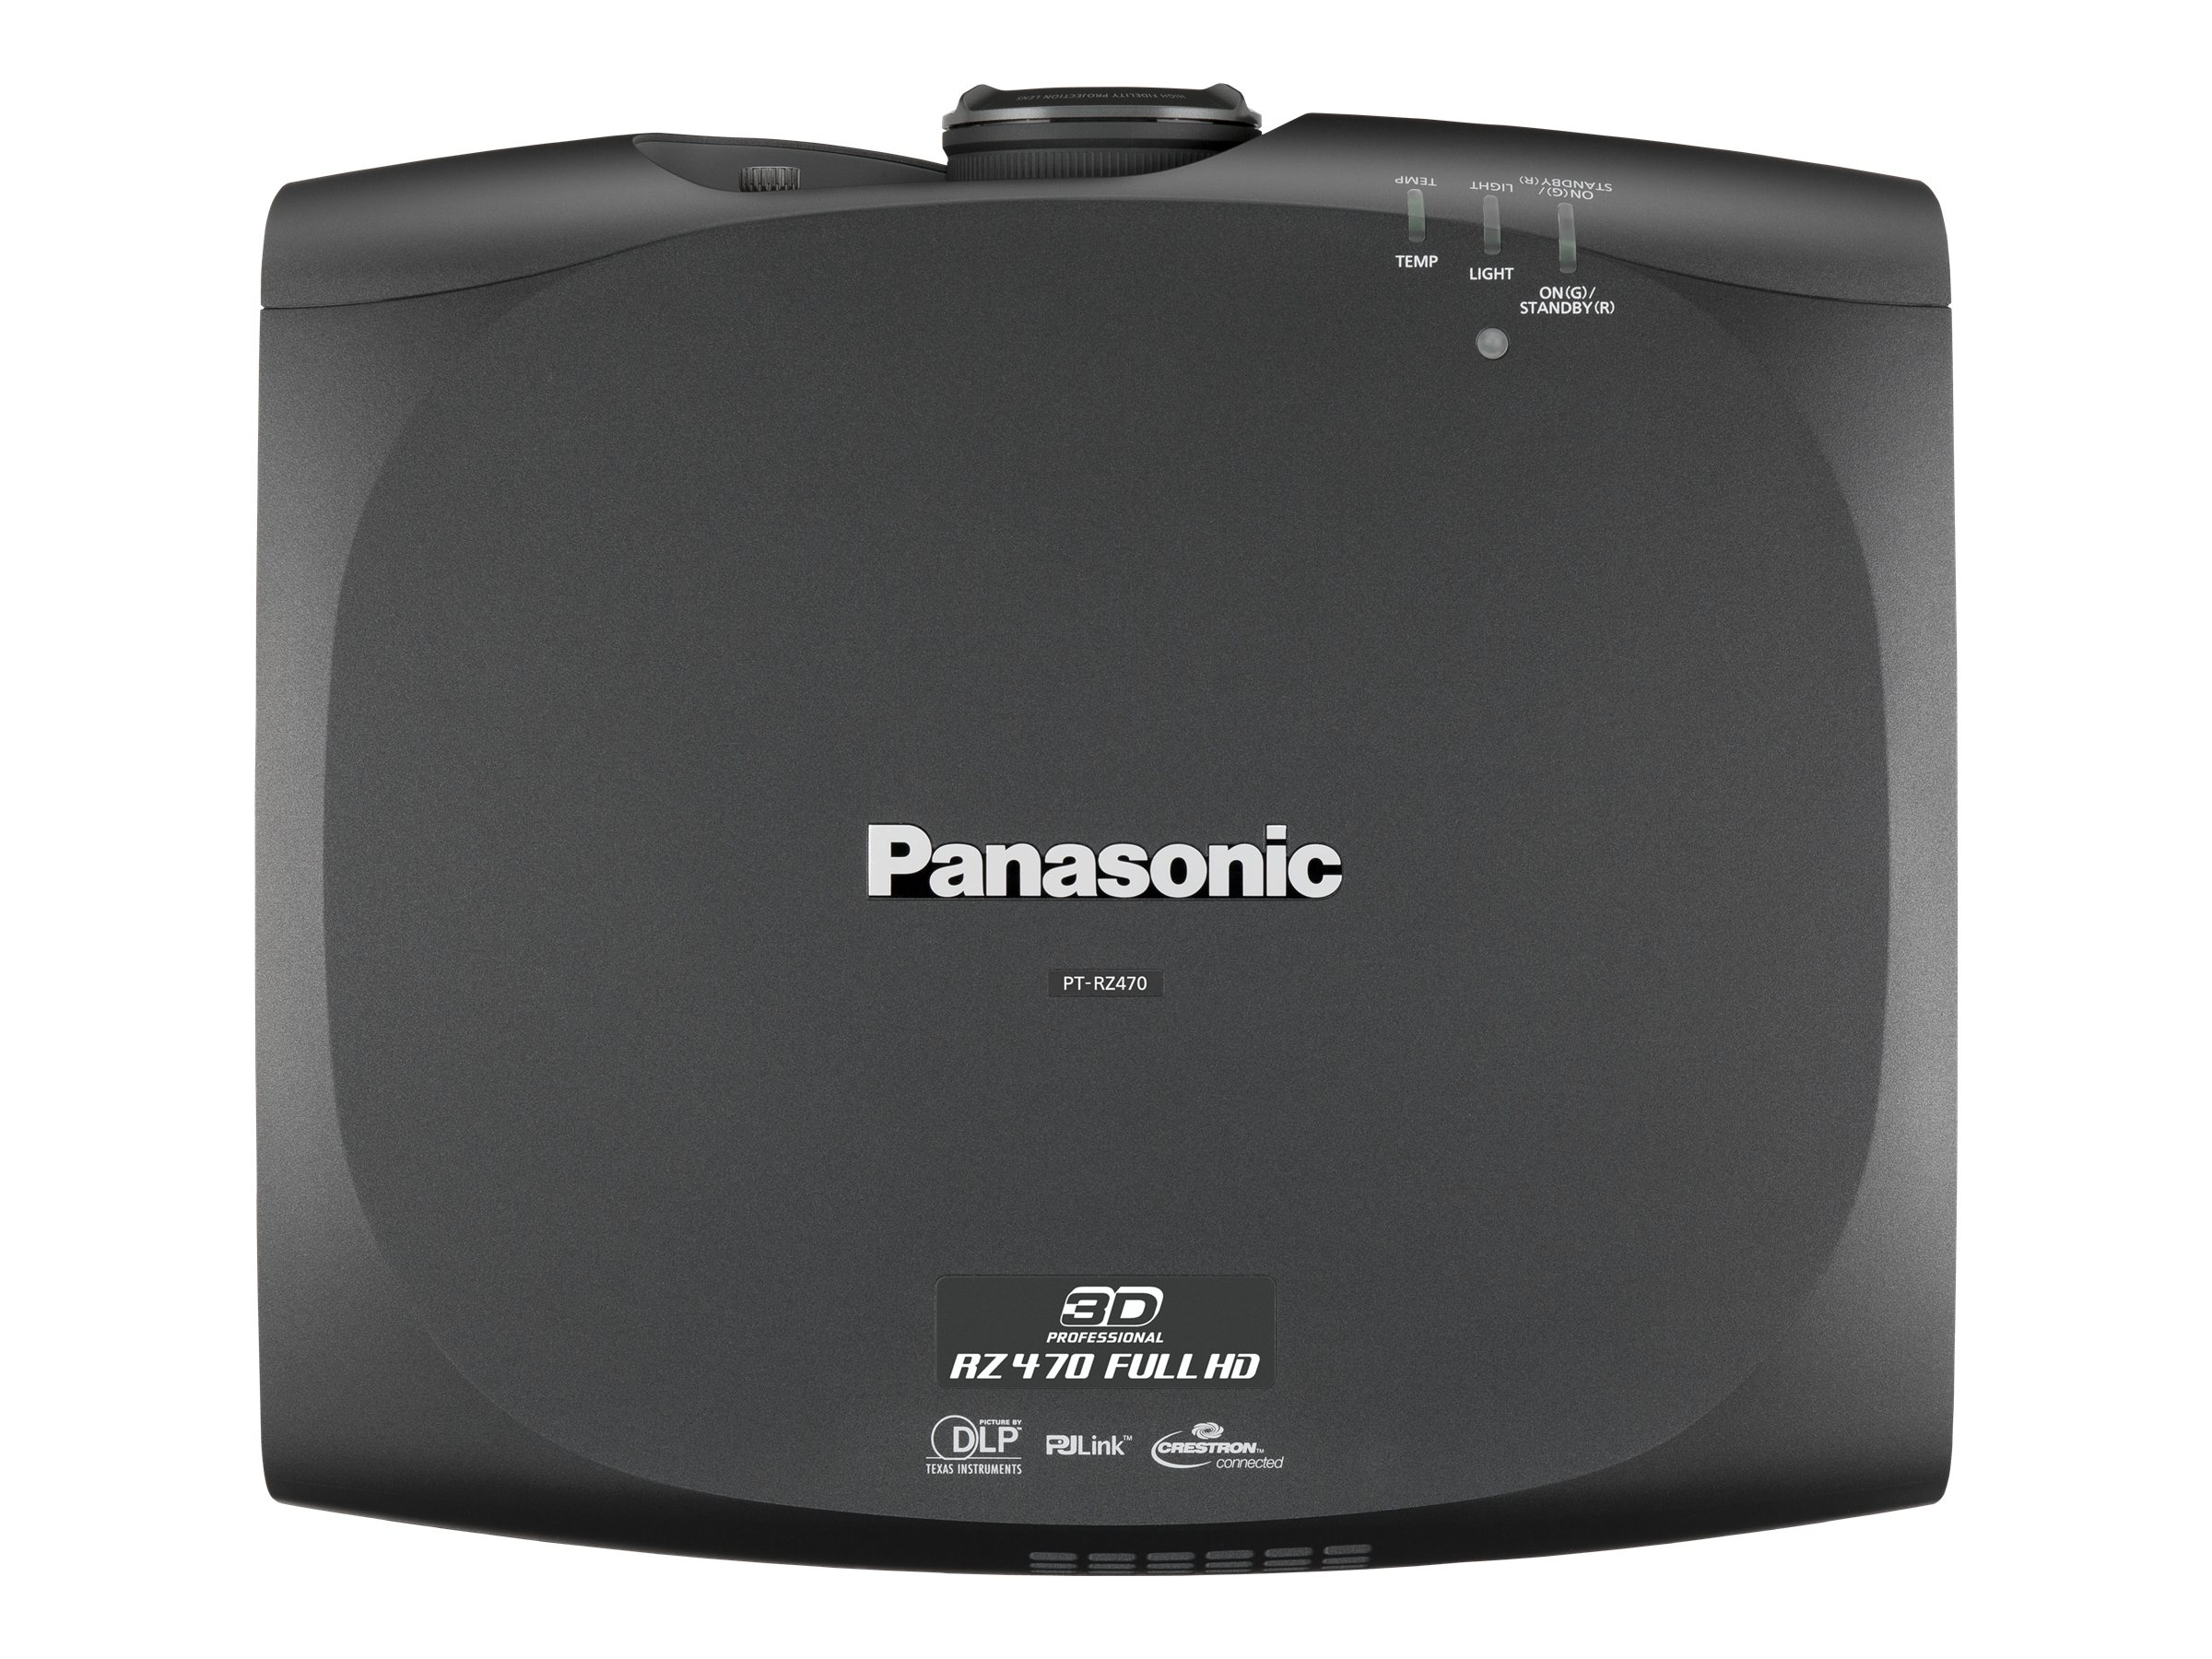 Panasonic PTRZ470UK Image 10